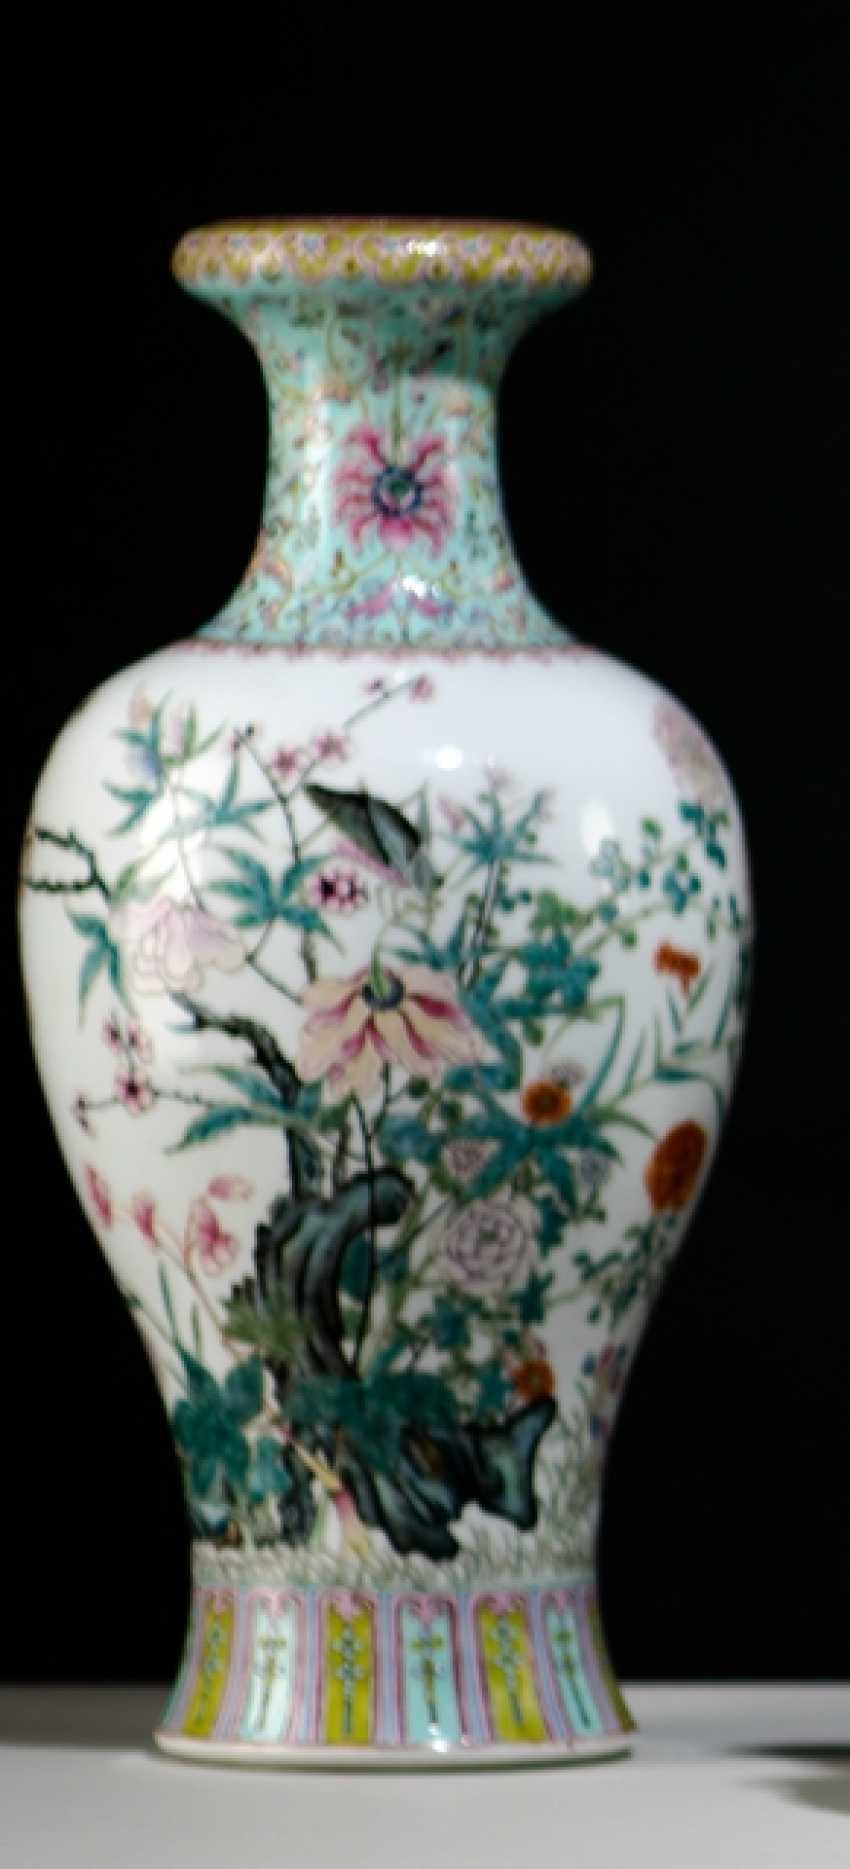 'Famille rose'-Vase made of porcelain with insects and flowers, in addition to Lotus - photo 1